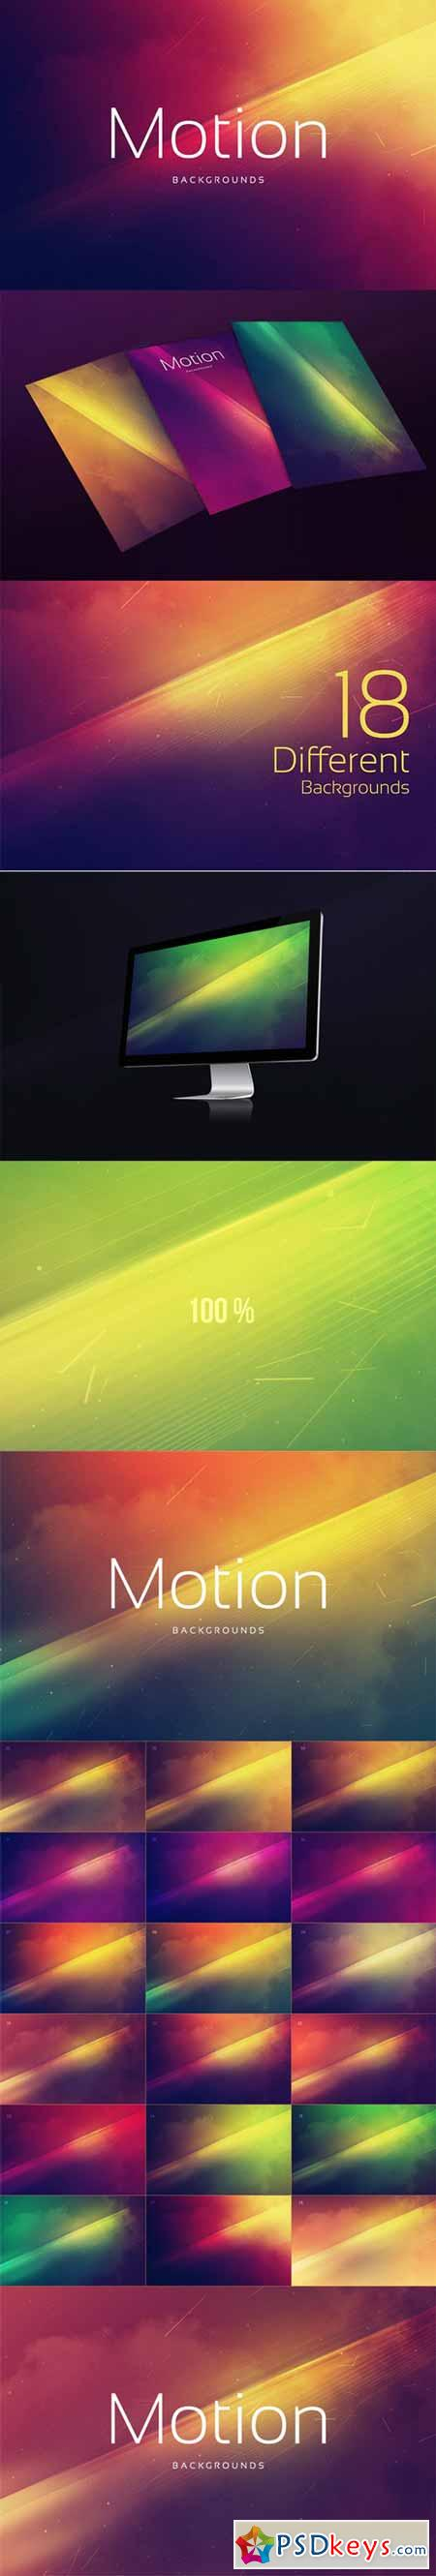 18 Motion Backgrounds 252808